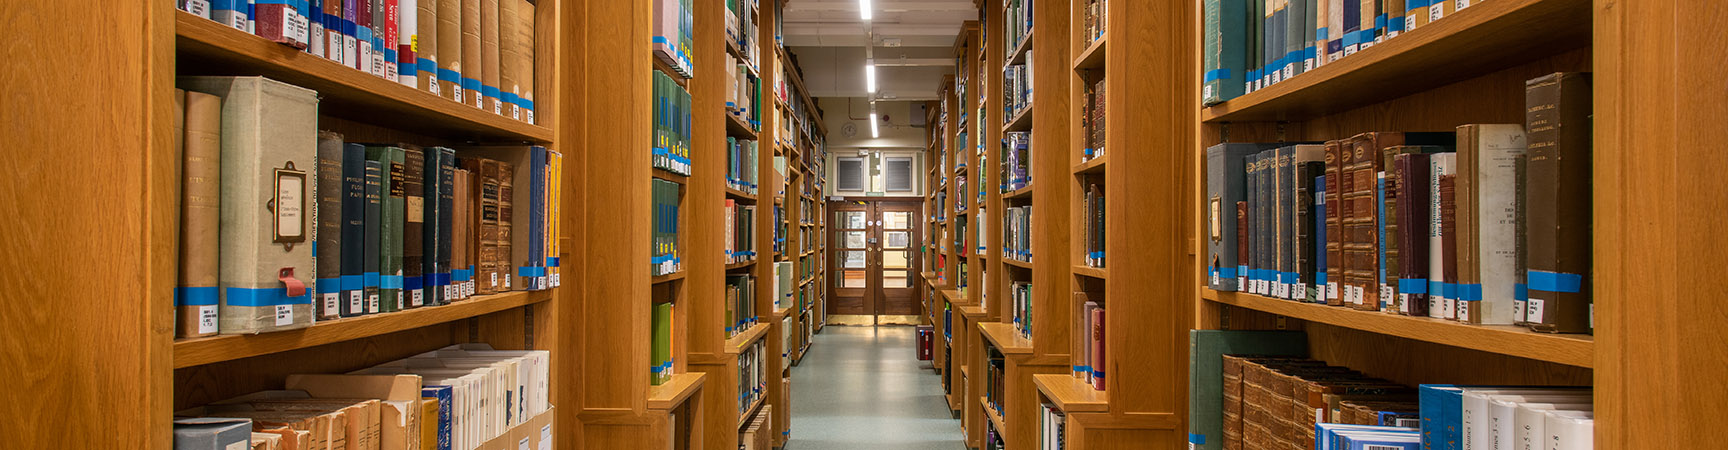 Two rows of bookshelves on either side of a walkway